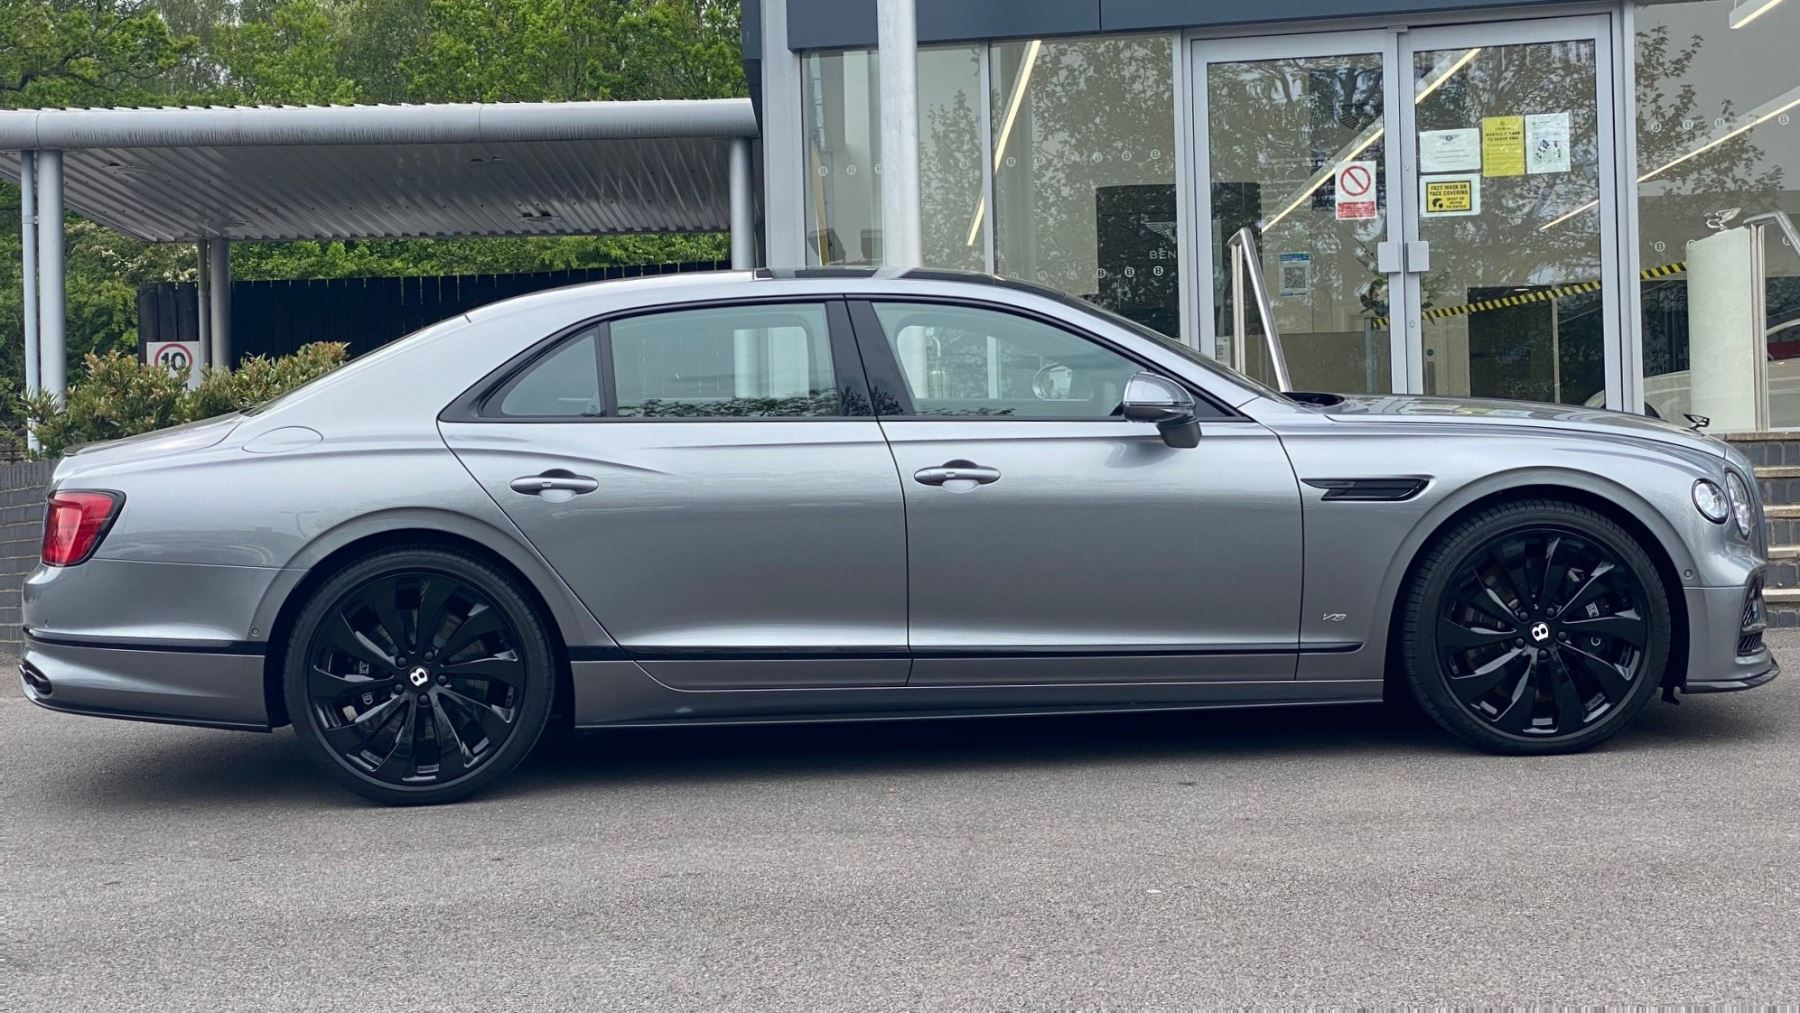 Bentley Flying Spur 4.0 V8 Mulliner Driving Spec 4dr Auto - Touring and City Specification image 3